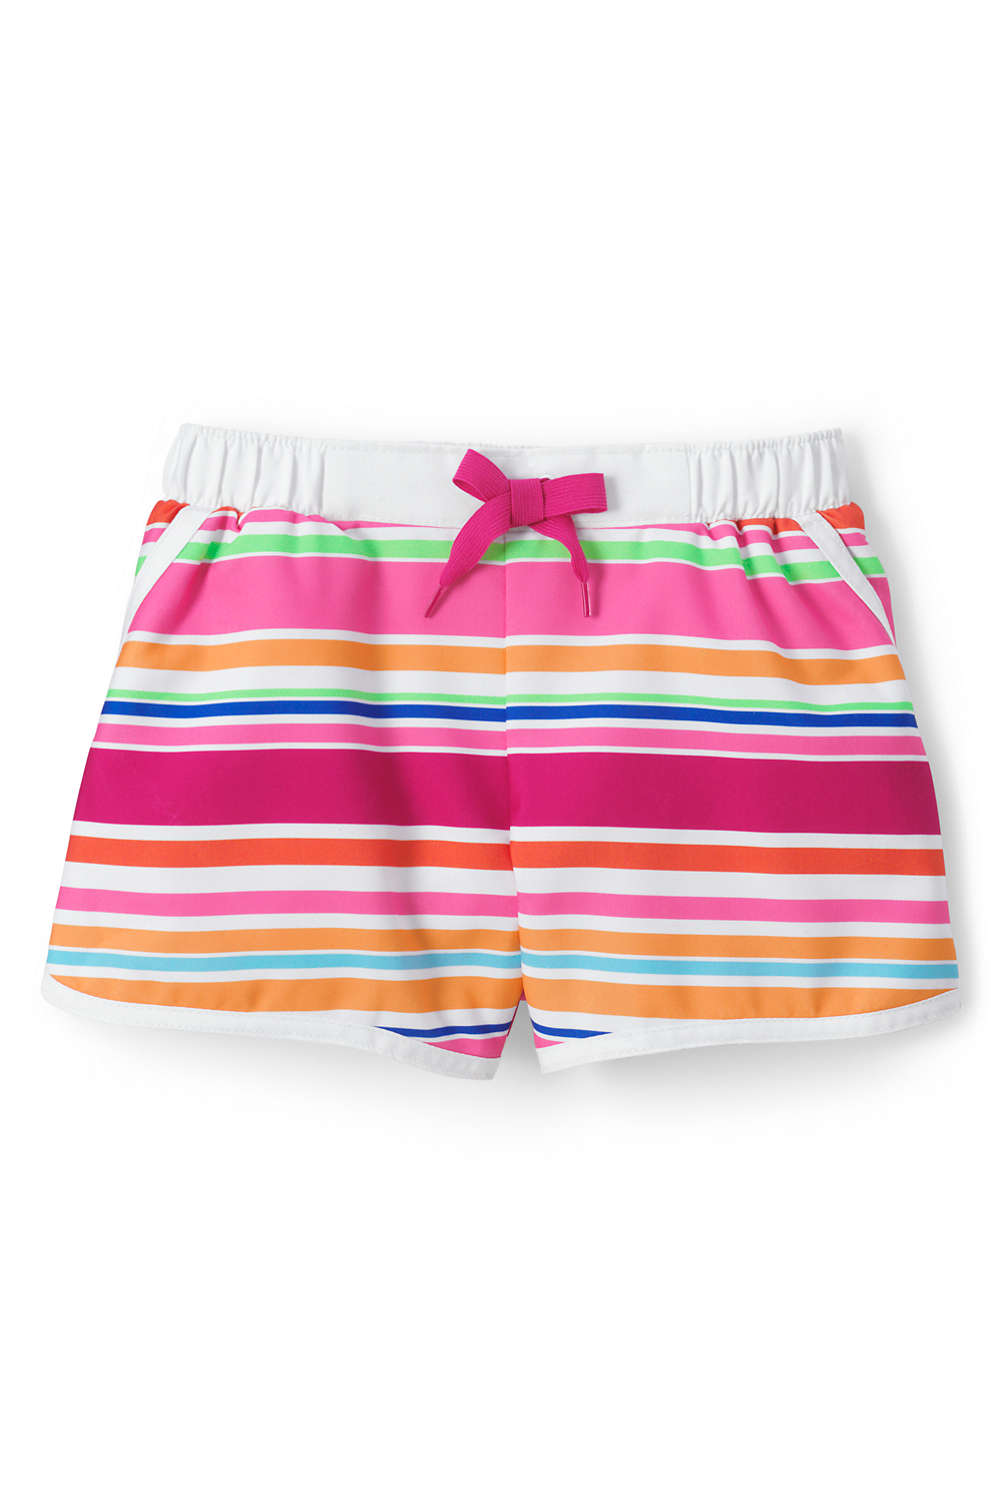 88152abb416 Girls Swim Shorts from Lands' End